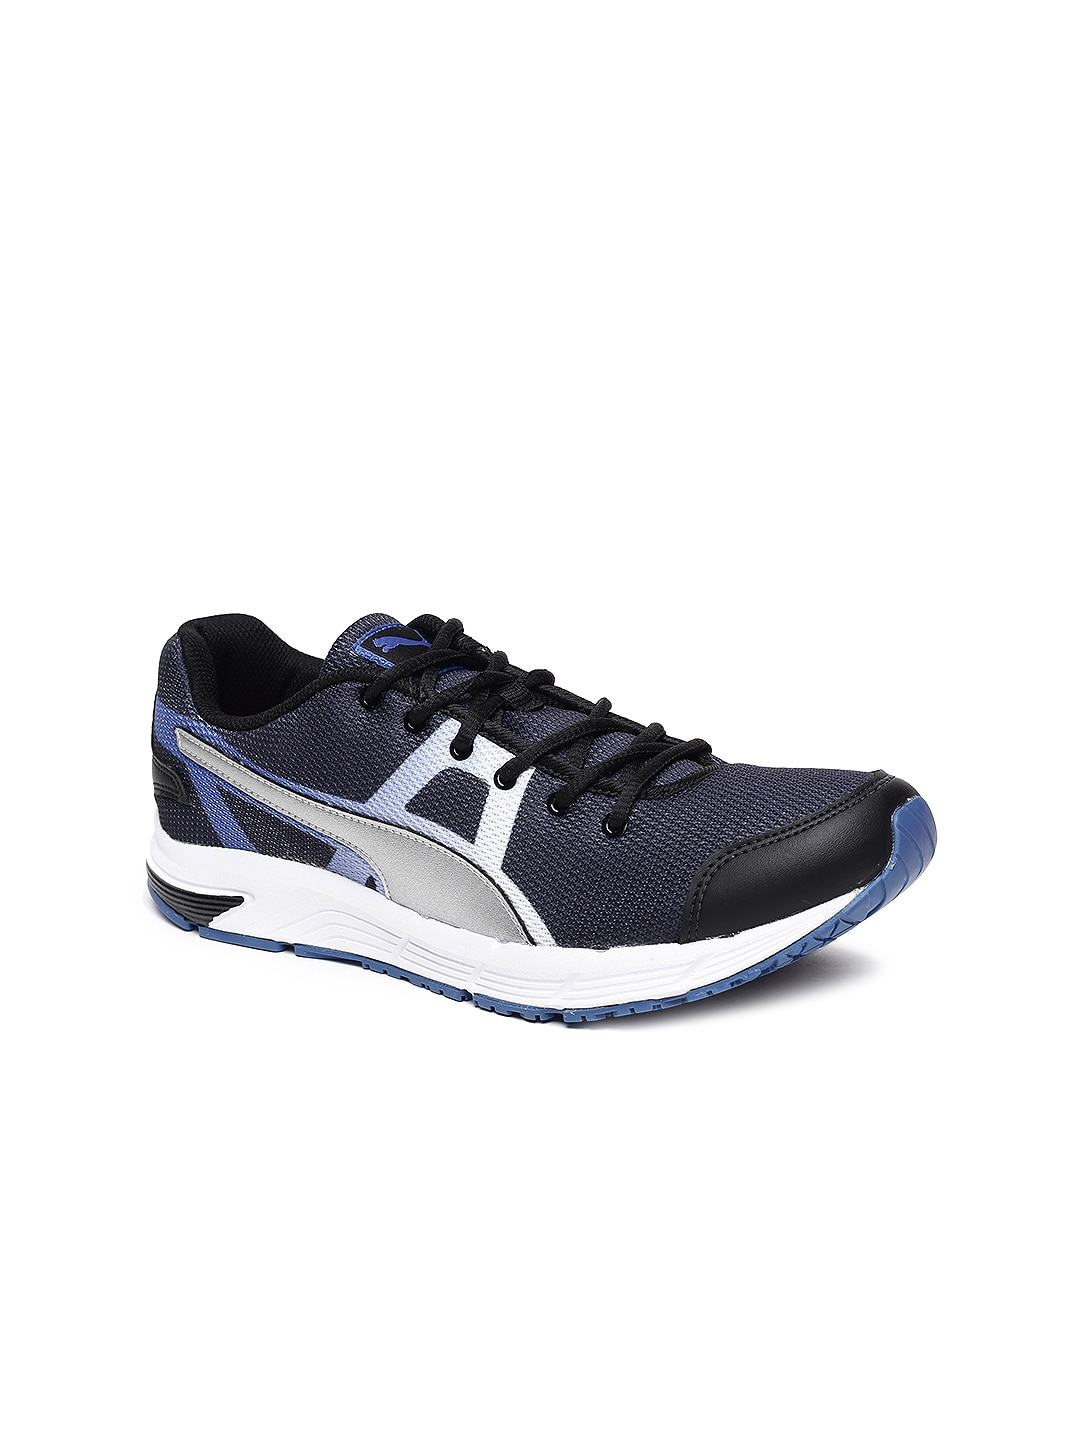 9107fdeee803 Puma Shoes - Buy Puma Shoes for Men   Women Online in India